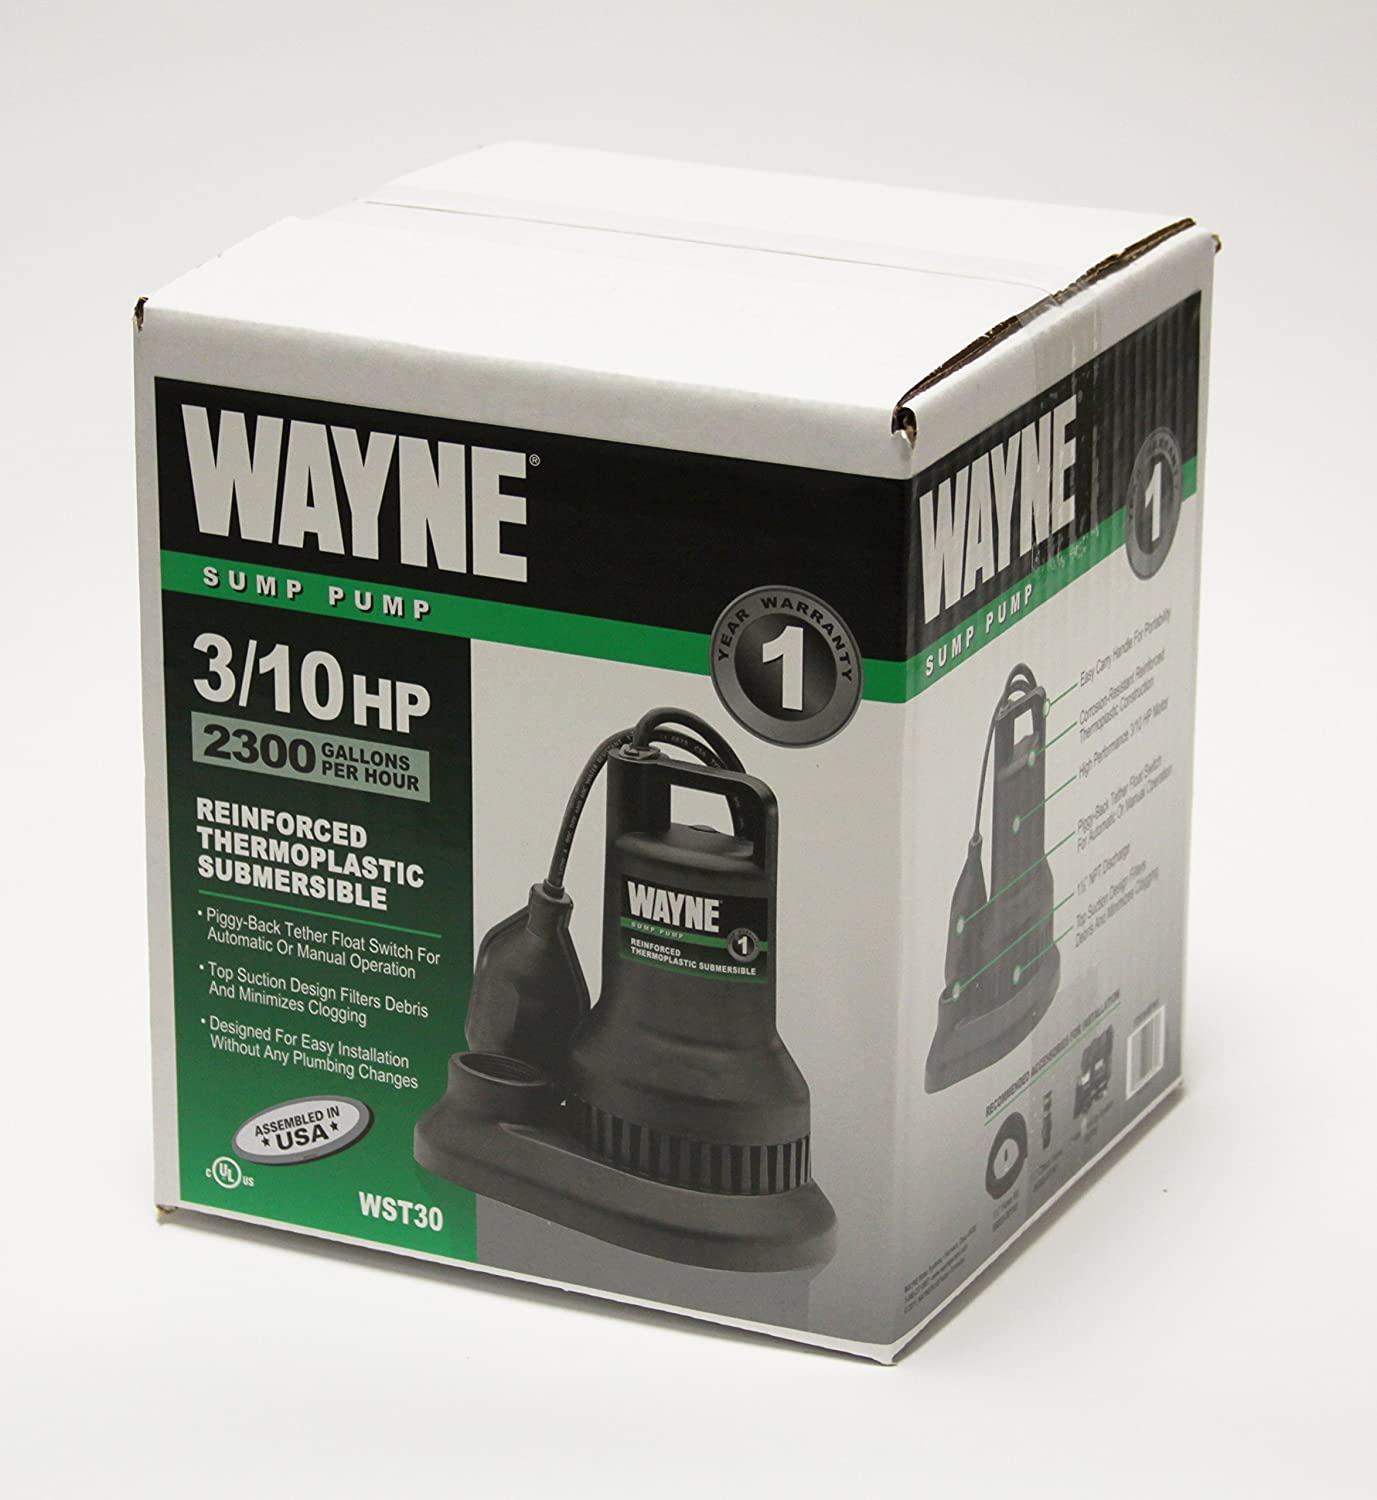 Wayne Wst30 3 10 Hp Reinforced Thermoplastic Submersible Sump Pump Float Switch Wiring With Tether